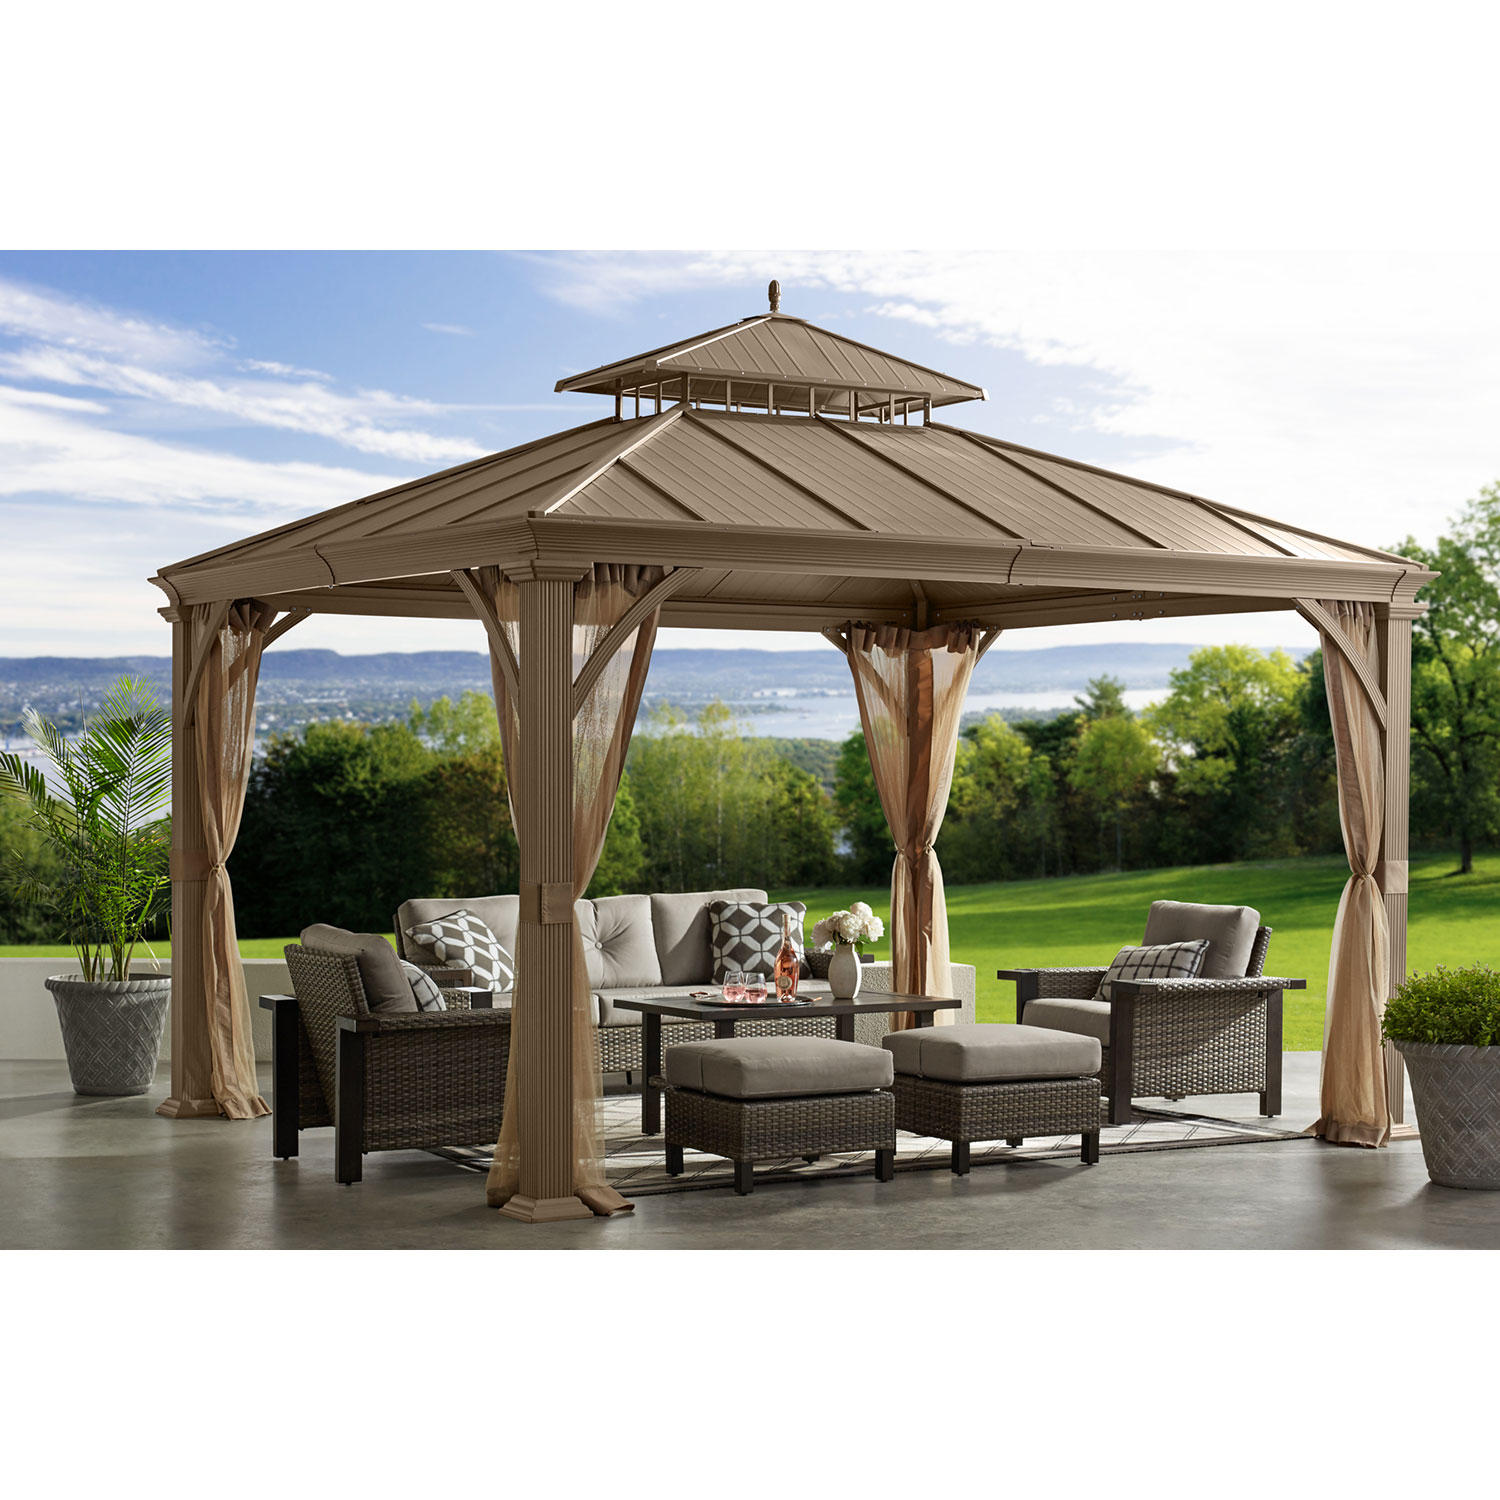 Member's Mark 10' x 12' Salemo Hardtop Gazebo